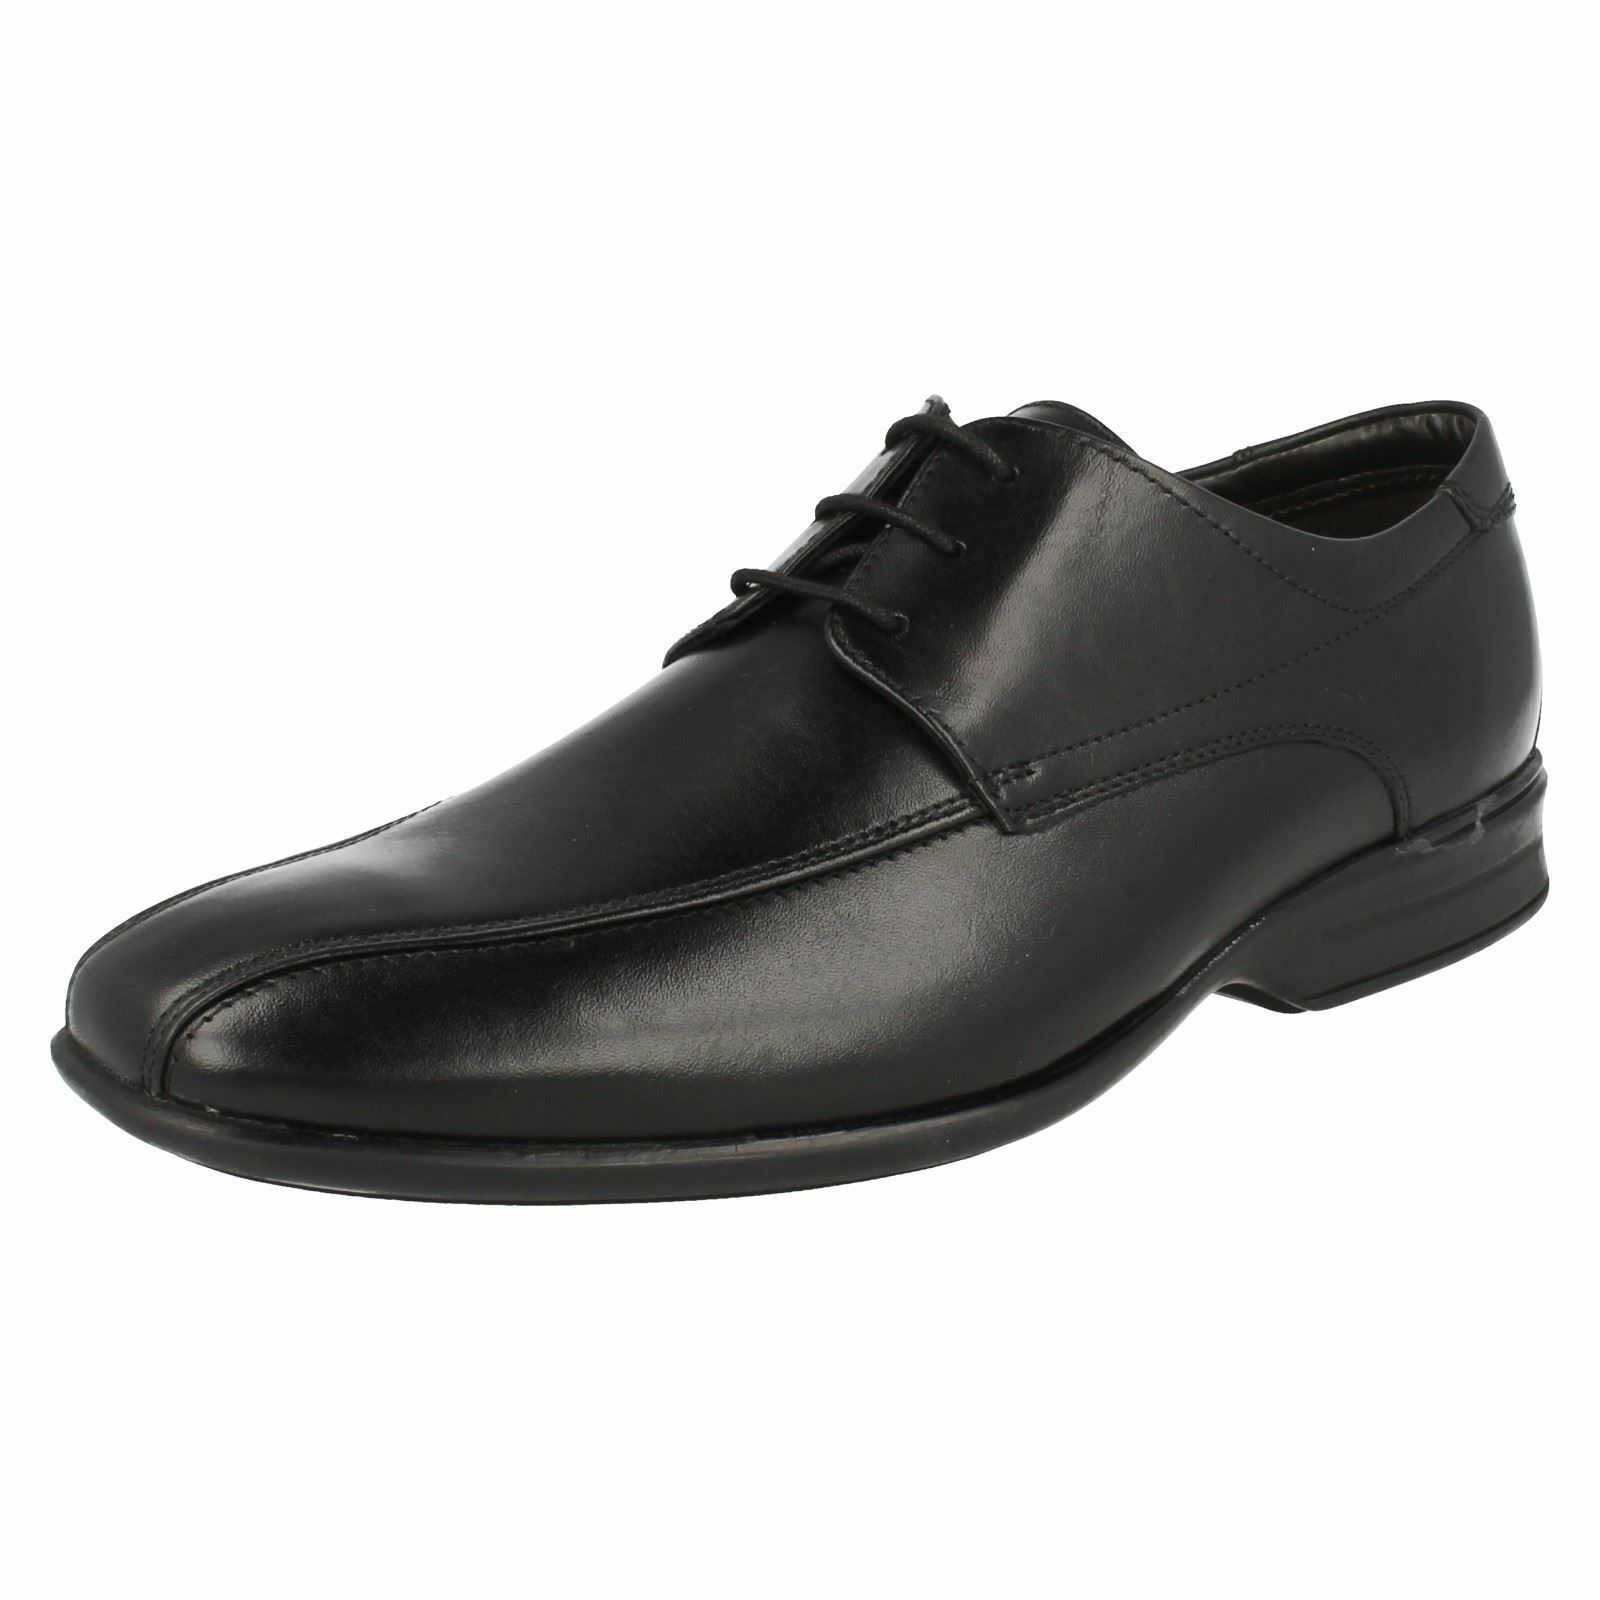 Mens Black Leather Lace Up Clarks Shoes Sizes 7 - 12 G Fitting Gadwell over